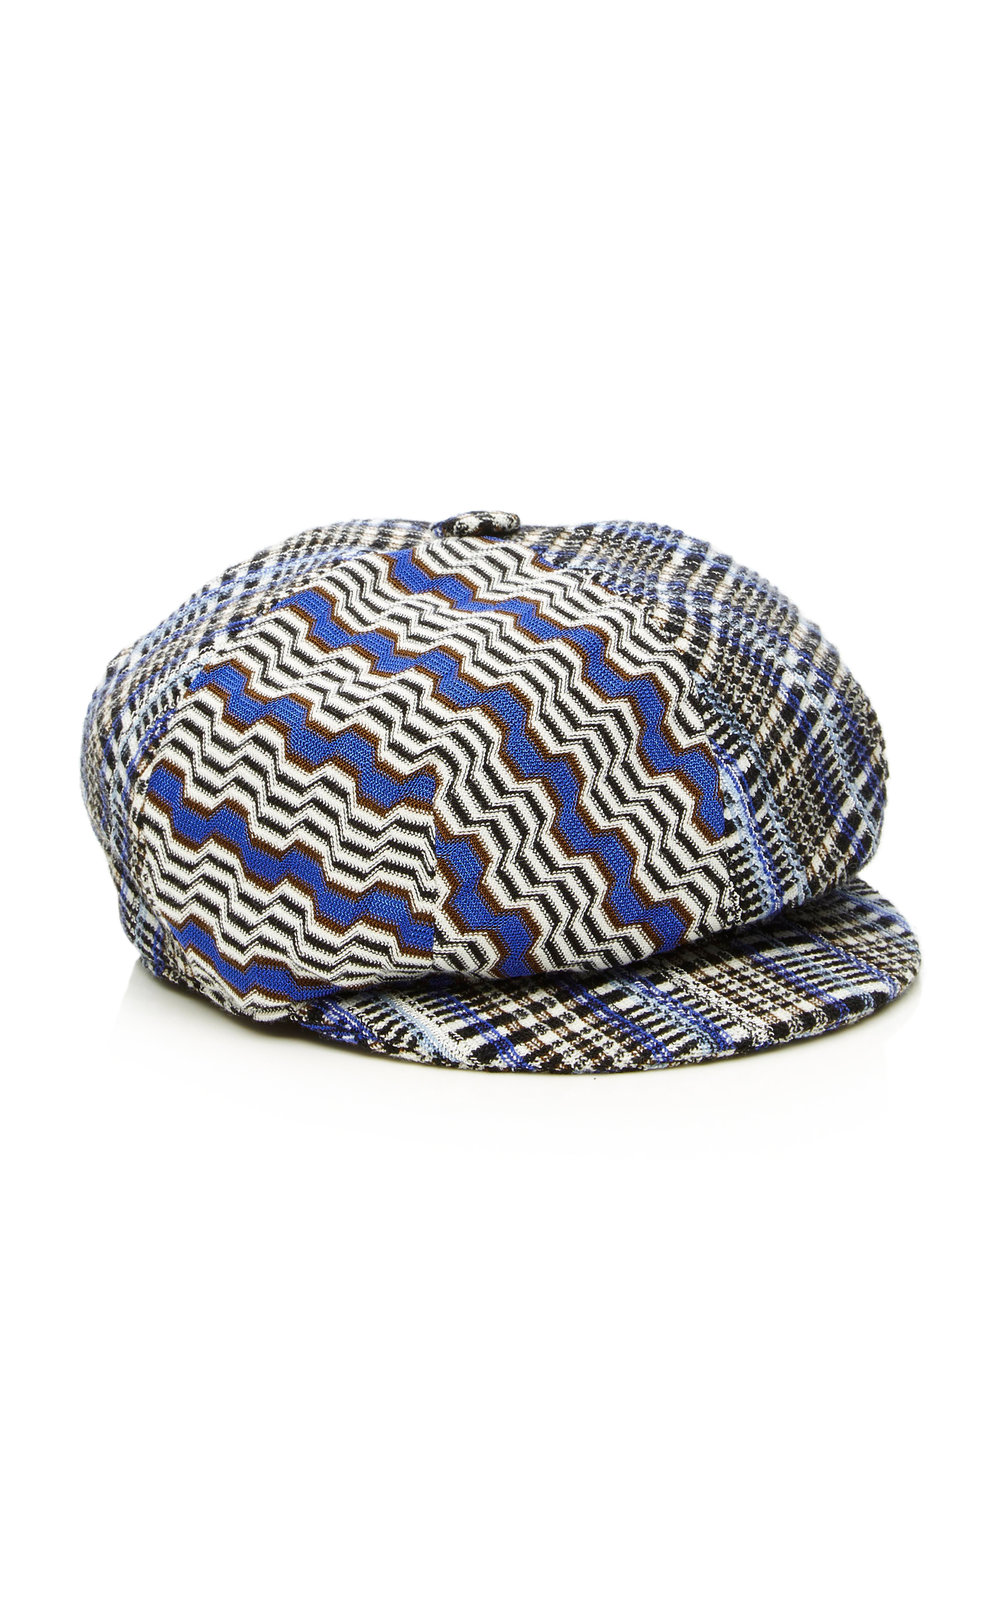 plaid missoni newsboy cap